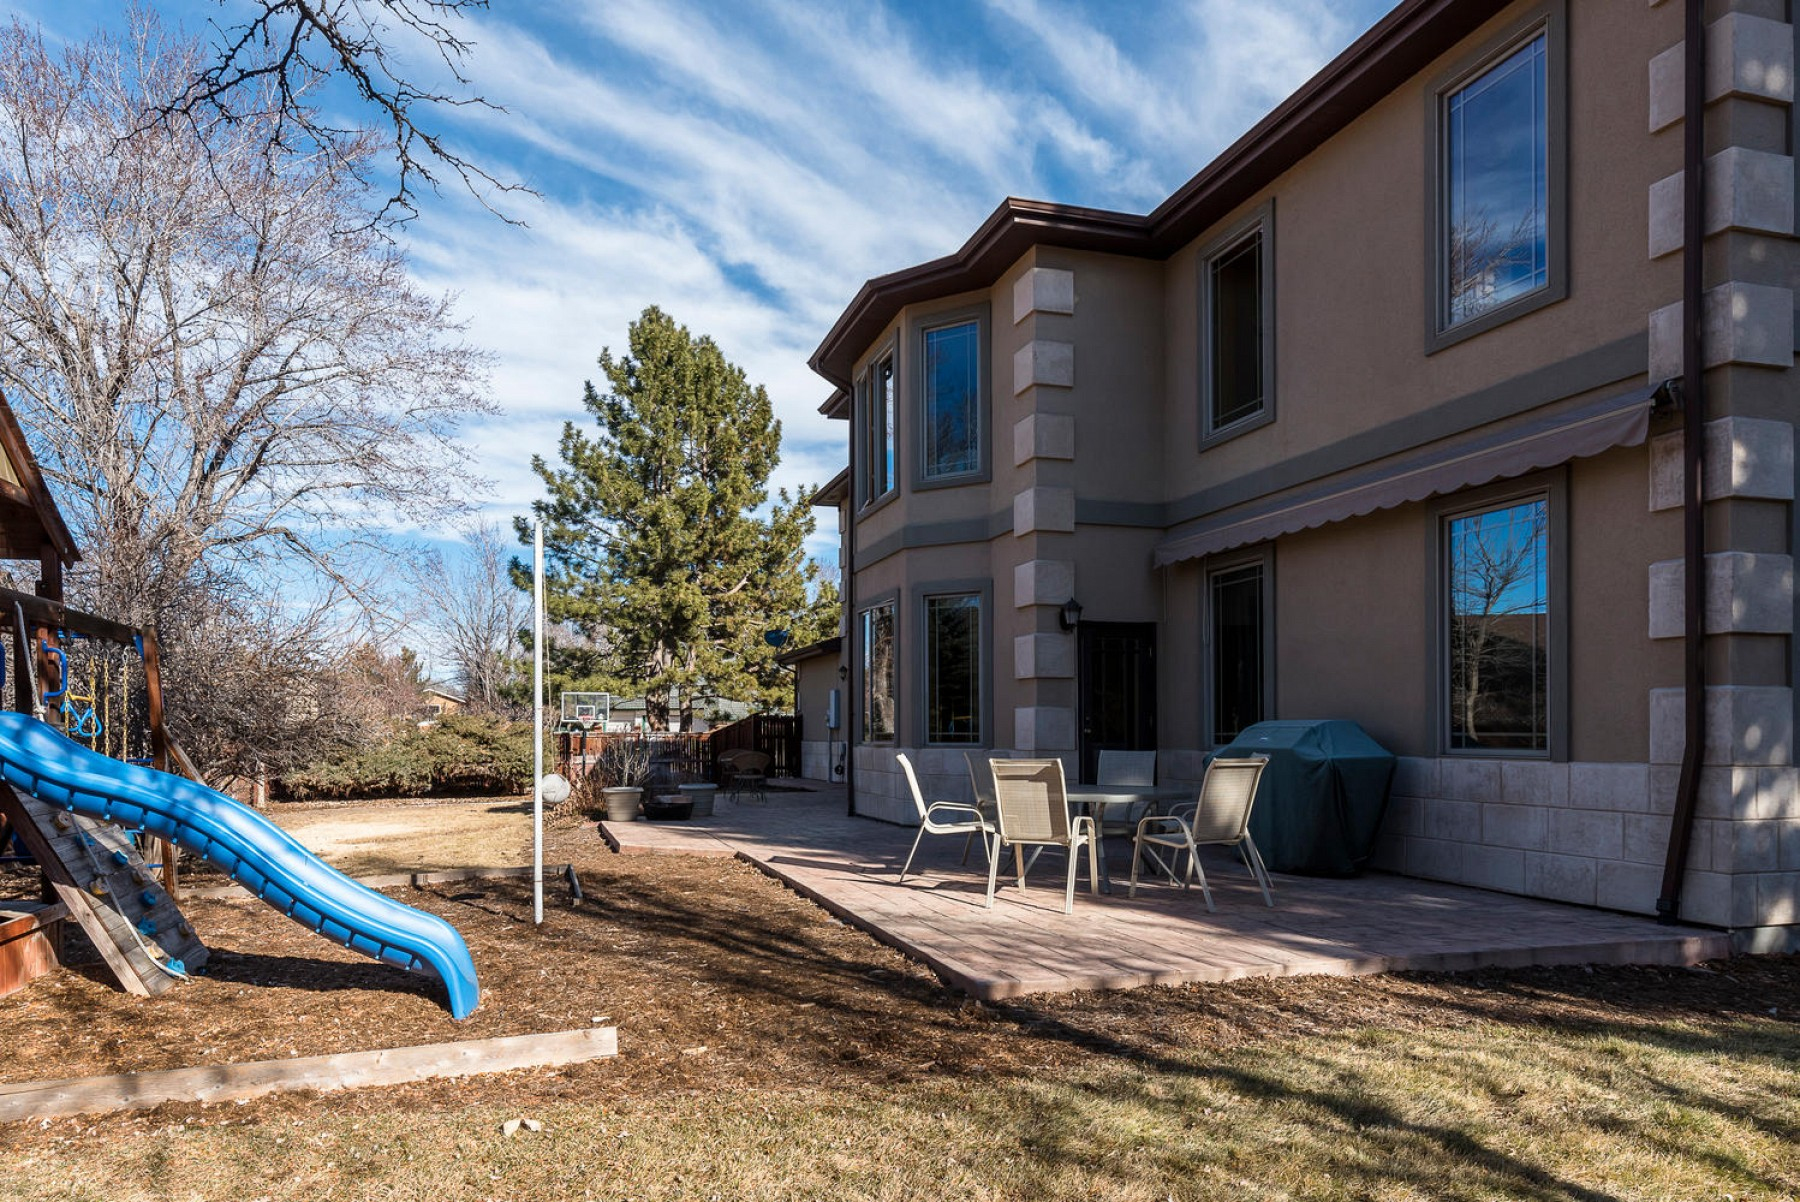 2203 S. Dallas Street, Denver, CO 80231